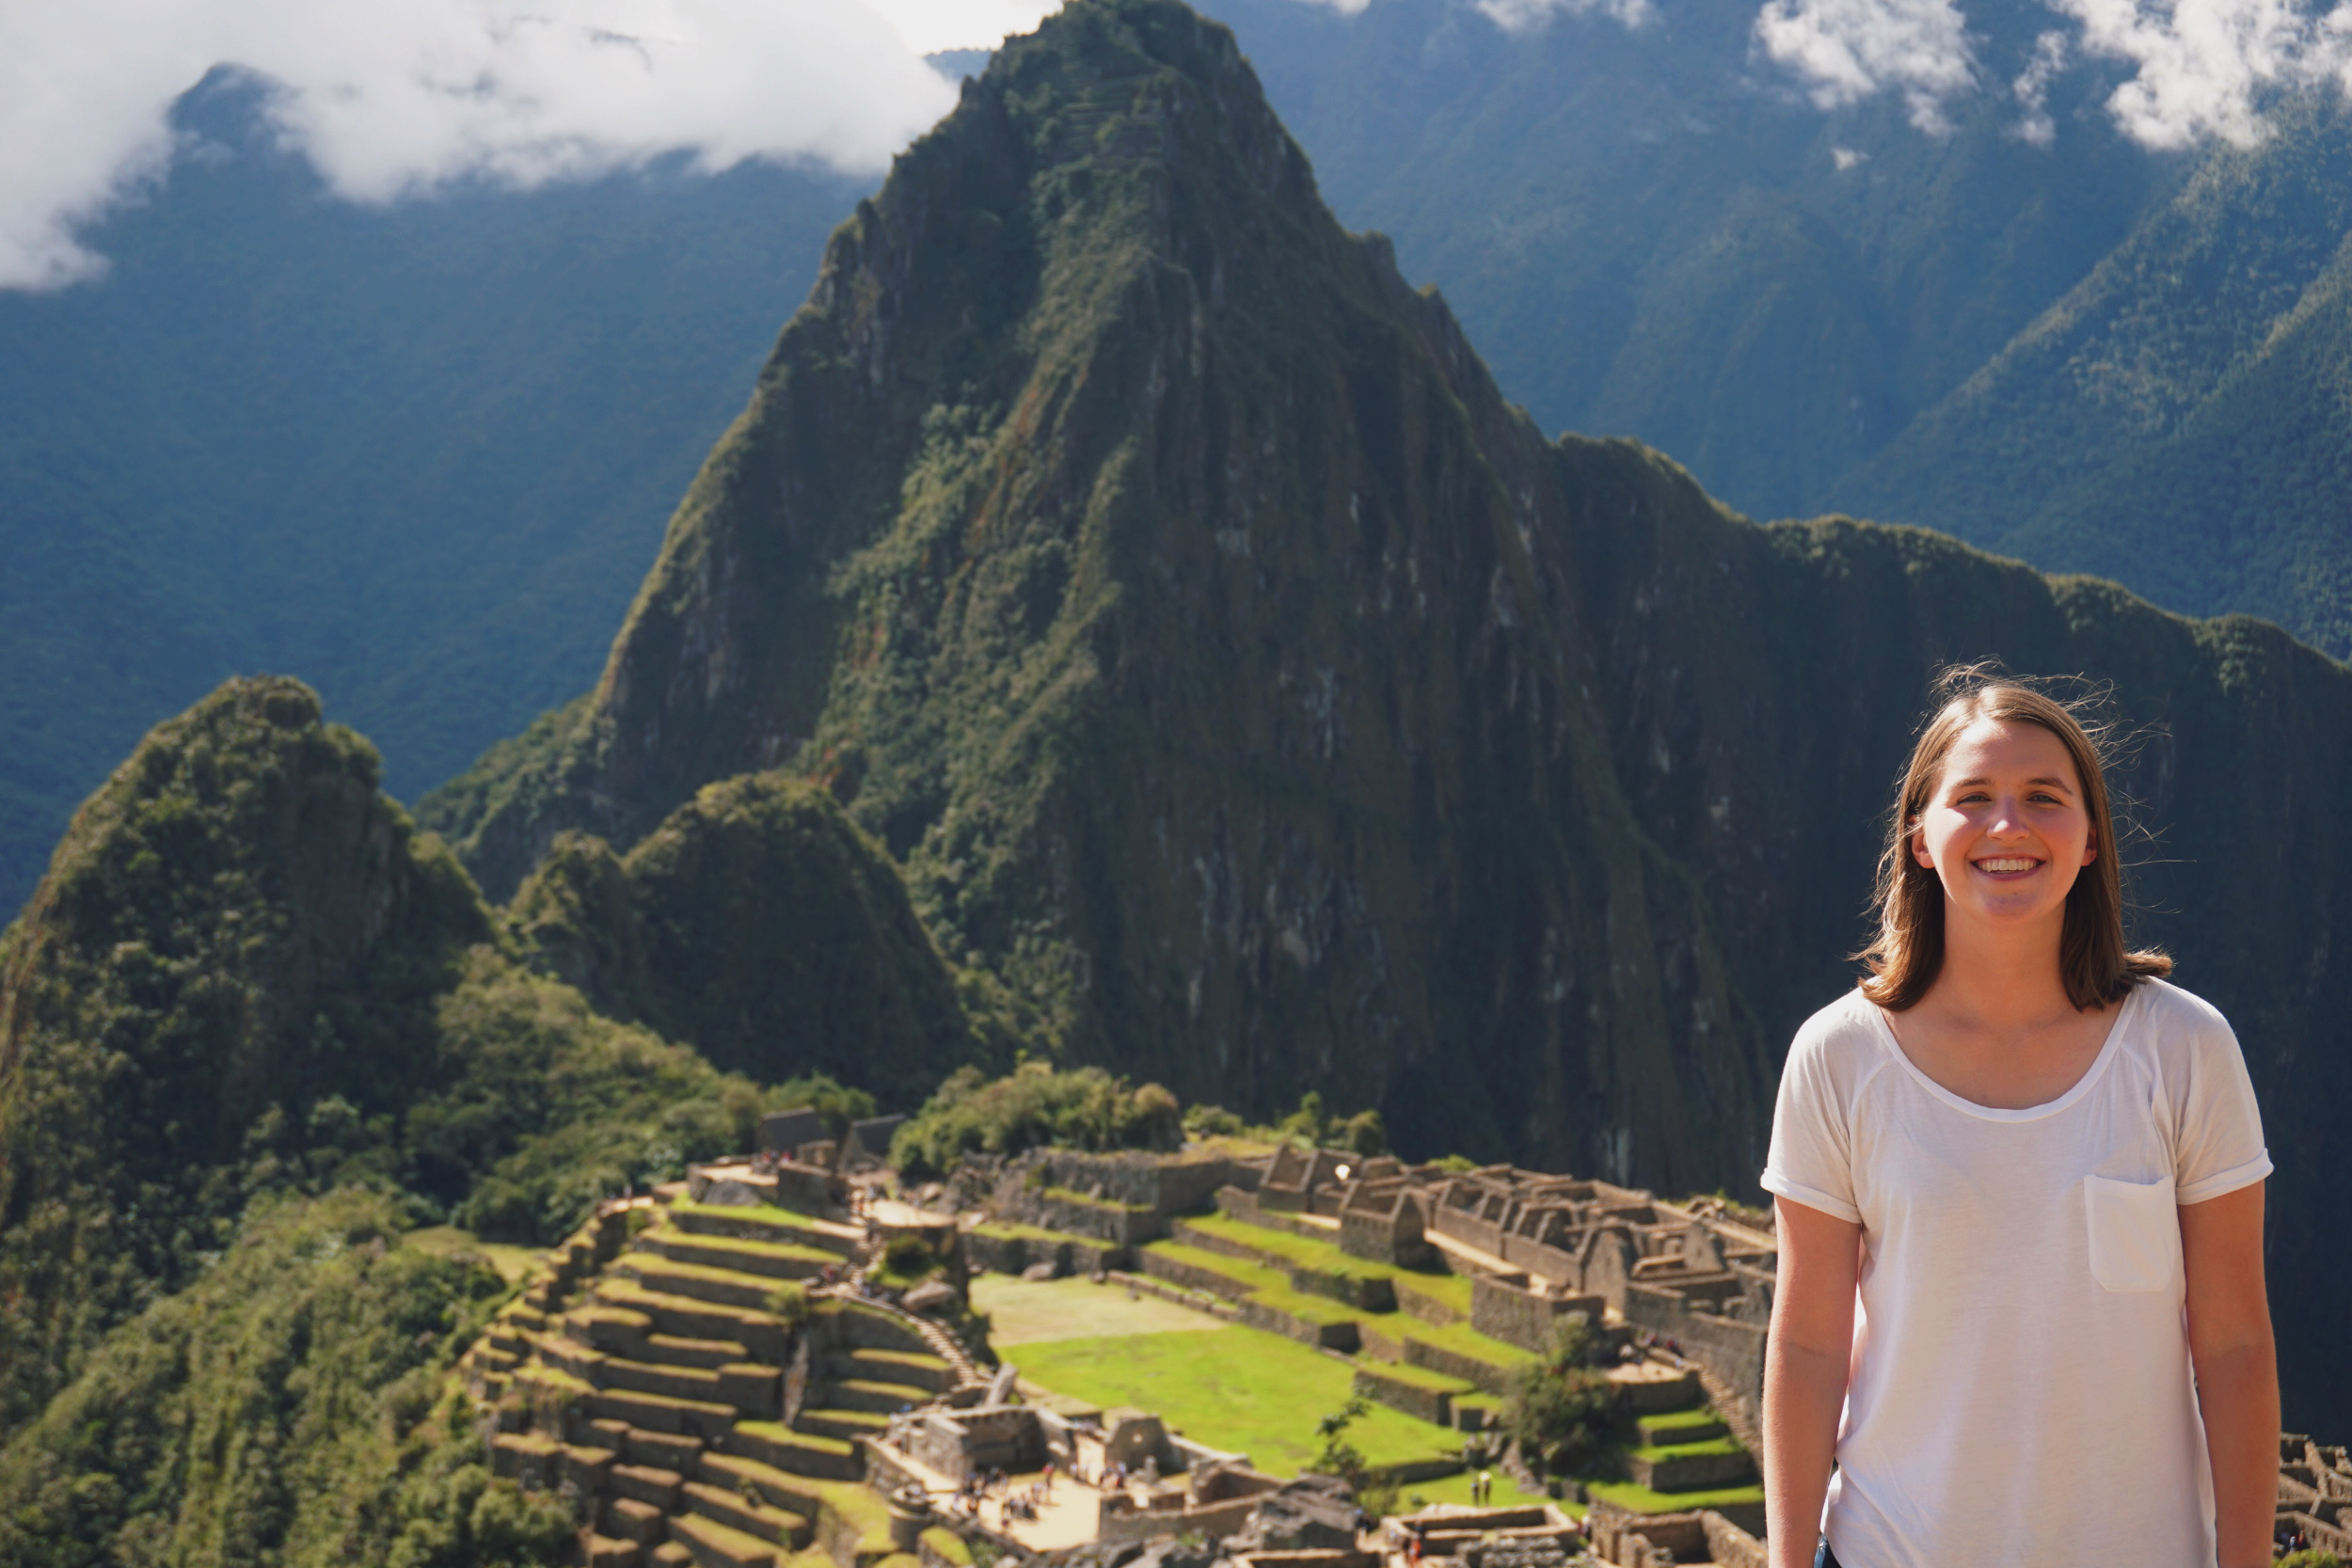 Taylor at Machu Picchu in Peru.